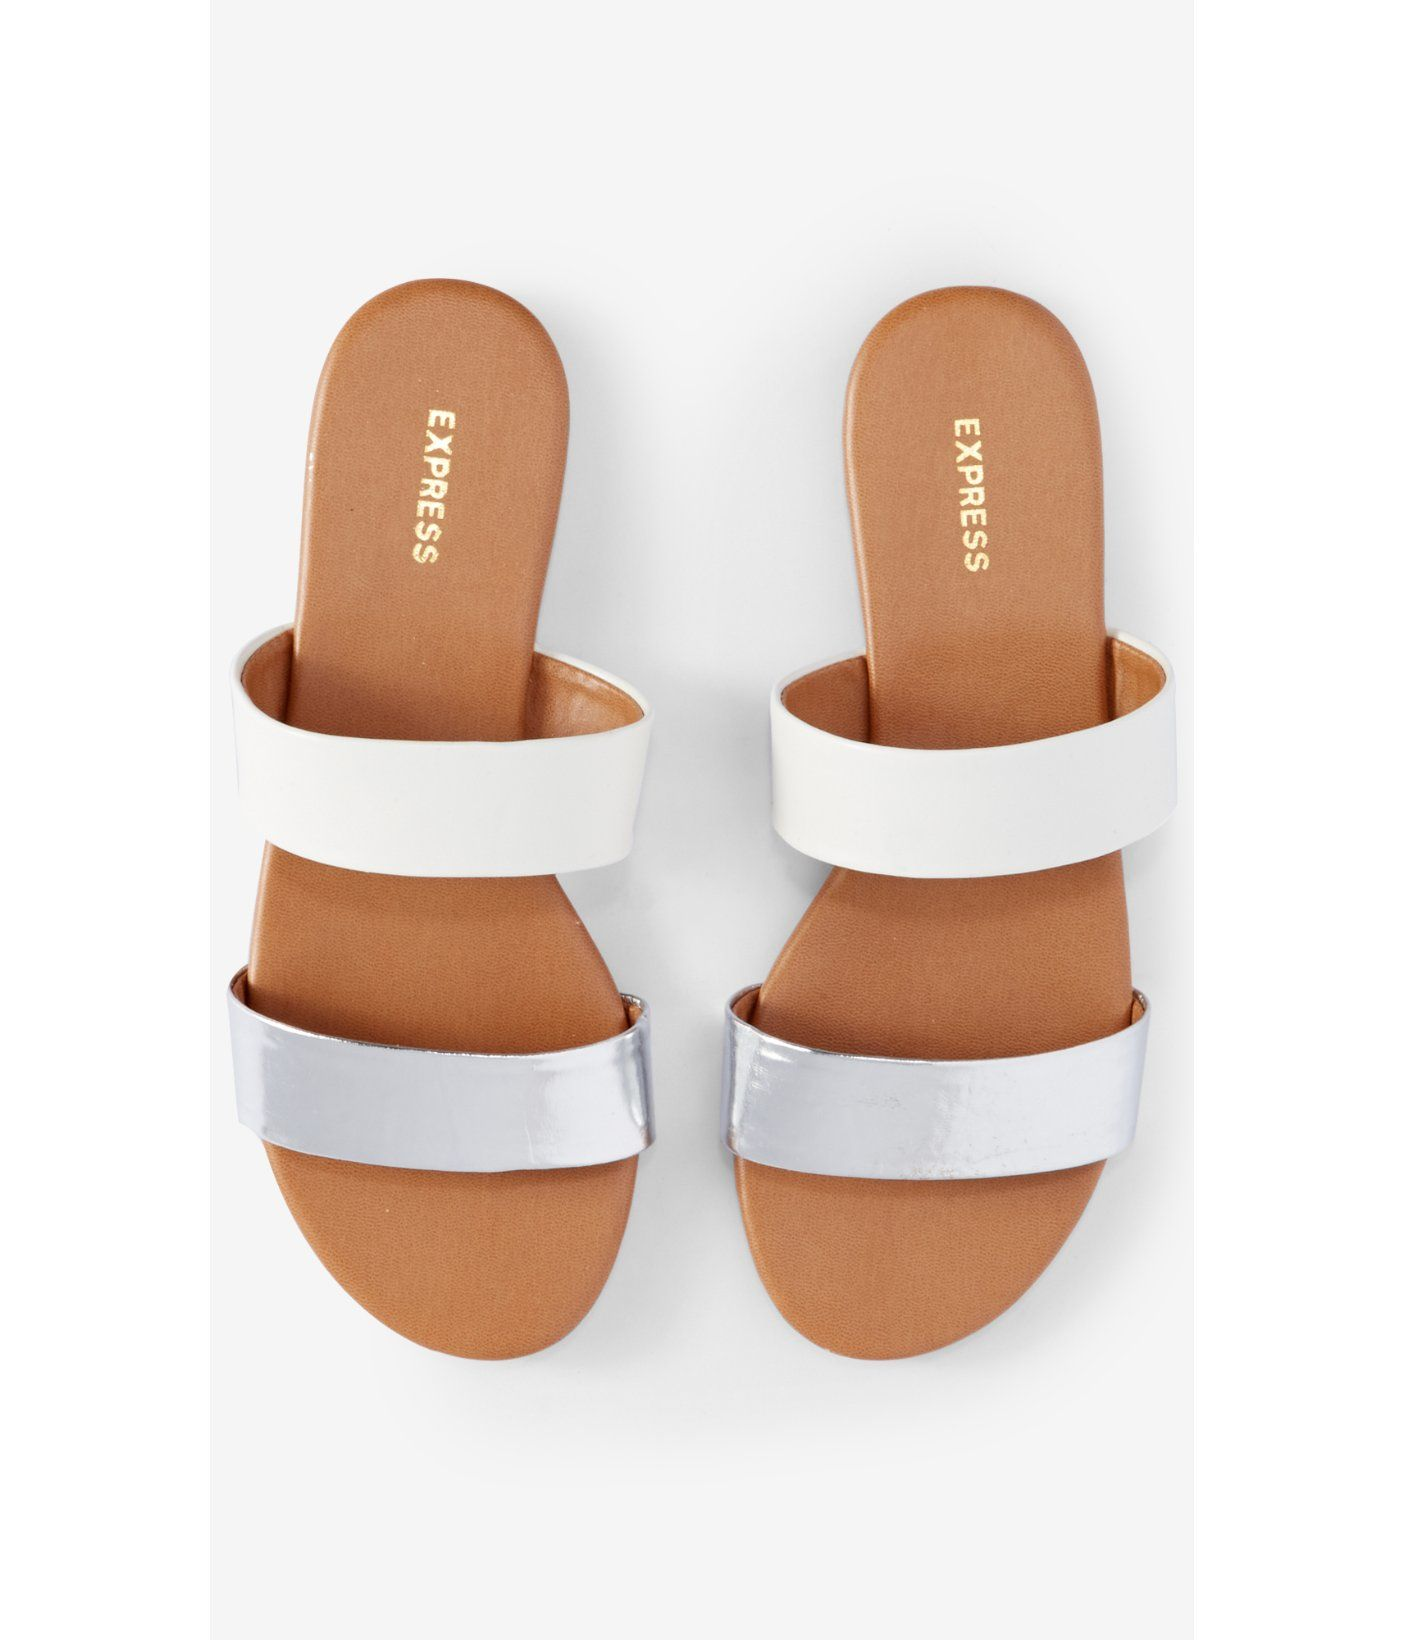 974a31523 Express | two strap slide sandal in metallic & white - purchased ...